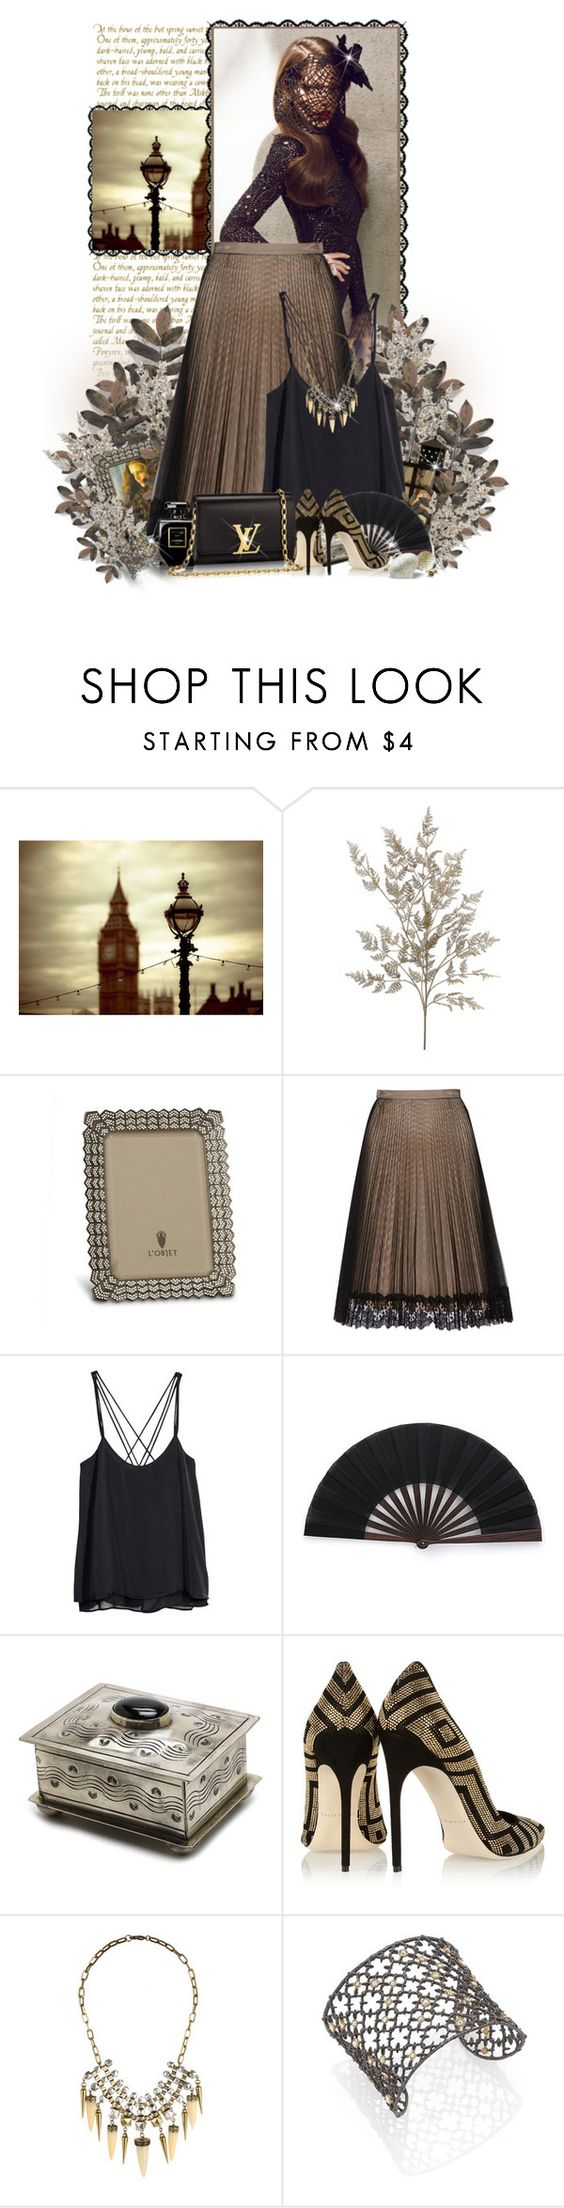 """ana"" by ana-costa-queiroz ❤ liked on Polyvore featuring beauty, L'Objet, Christopher Kane, H&M, Brian Atwood, Louis Vuitton, Forever 21 and Alexis Bittar"